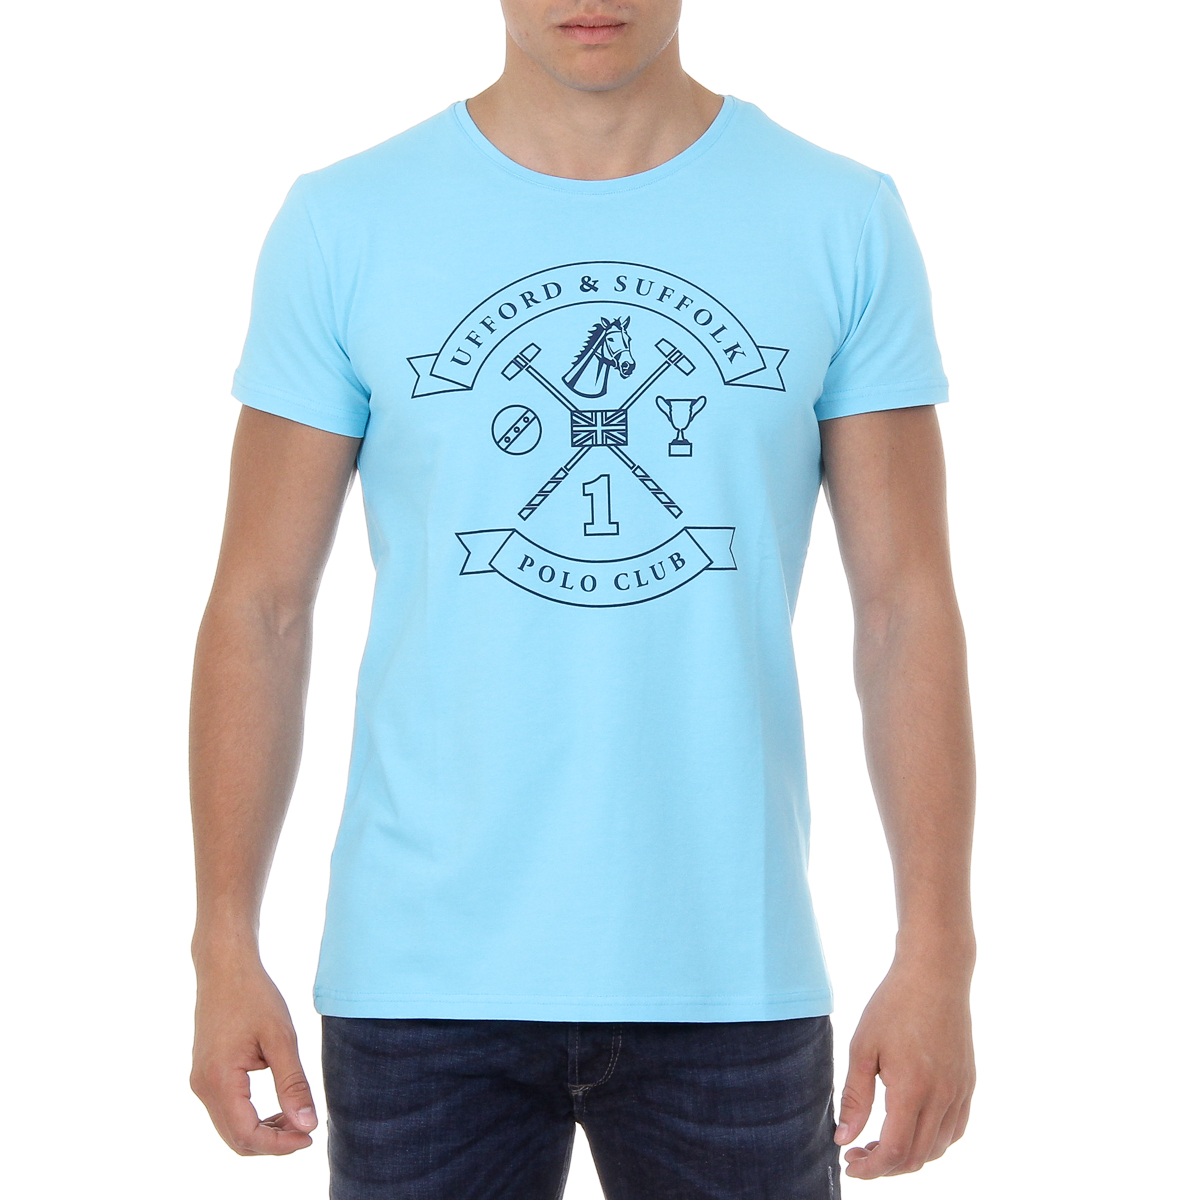 Primary image for Ufford & Suffolk Polo Club Mens T-Shirt Short Sleeves Round Neck US027 BLUE